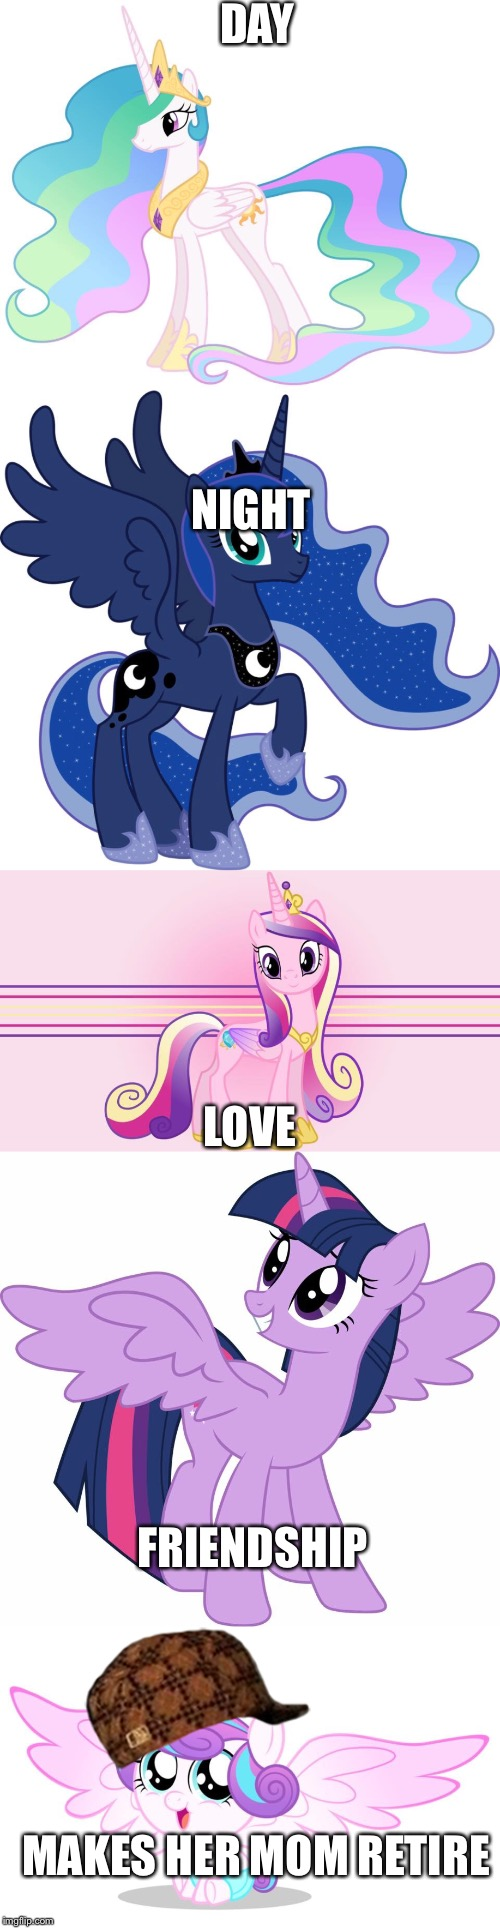 My little pony princess roll call  | DAY NIGHT LOVE FRIENDSHIP MAKES HER MOM RETIRE | image tagged in scumbag,princess celestia,princess luna,twilight sparkle,princess cadance,my little pony friendship is magic | made w/ Imgflip meme maker